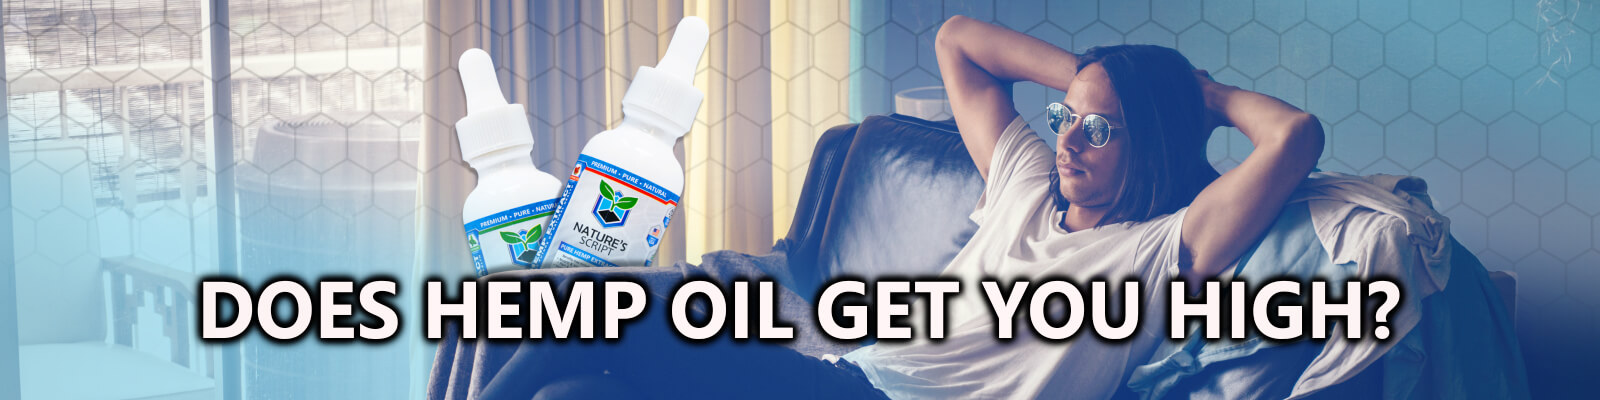 man relaxing on couch does hemp oil get you high banner